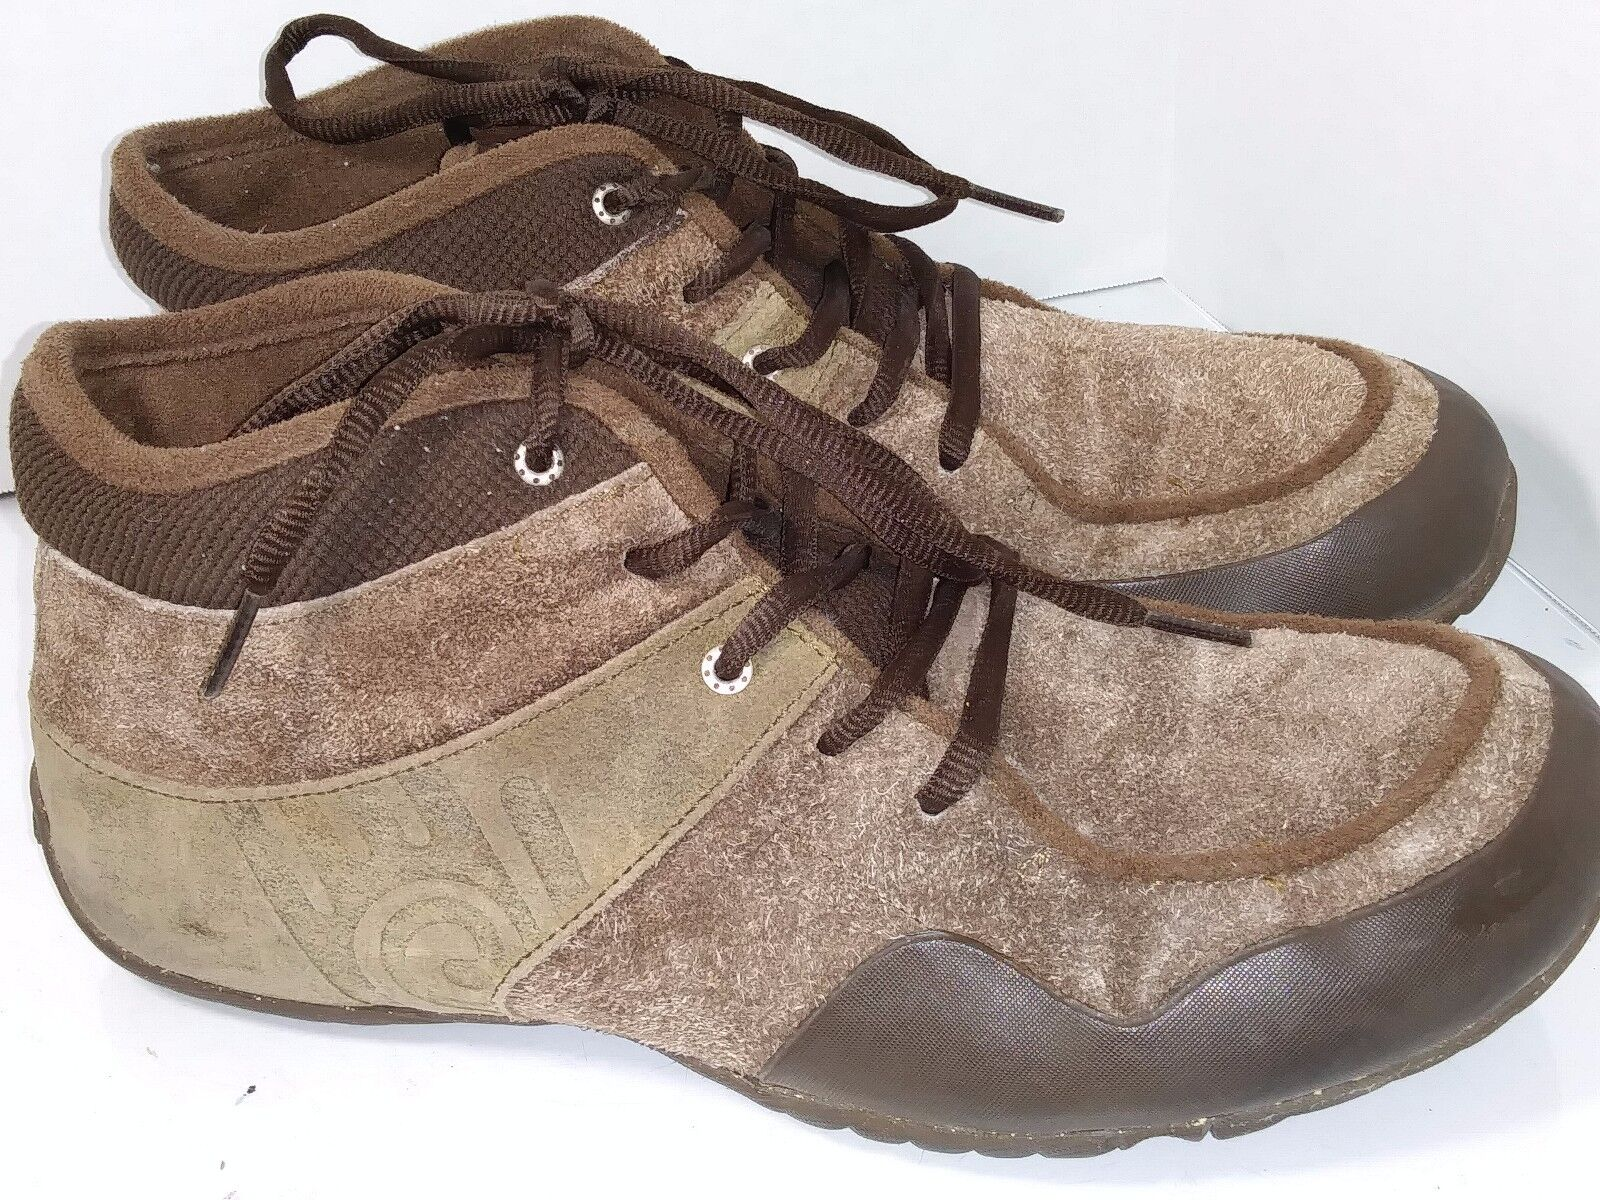 Teva Kendal plaza taupe 6043 Brown Suede Ankle Boots Mens Size 10.5